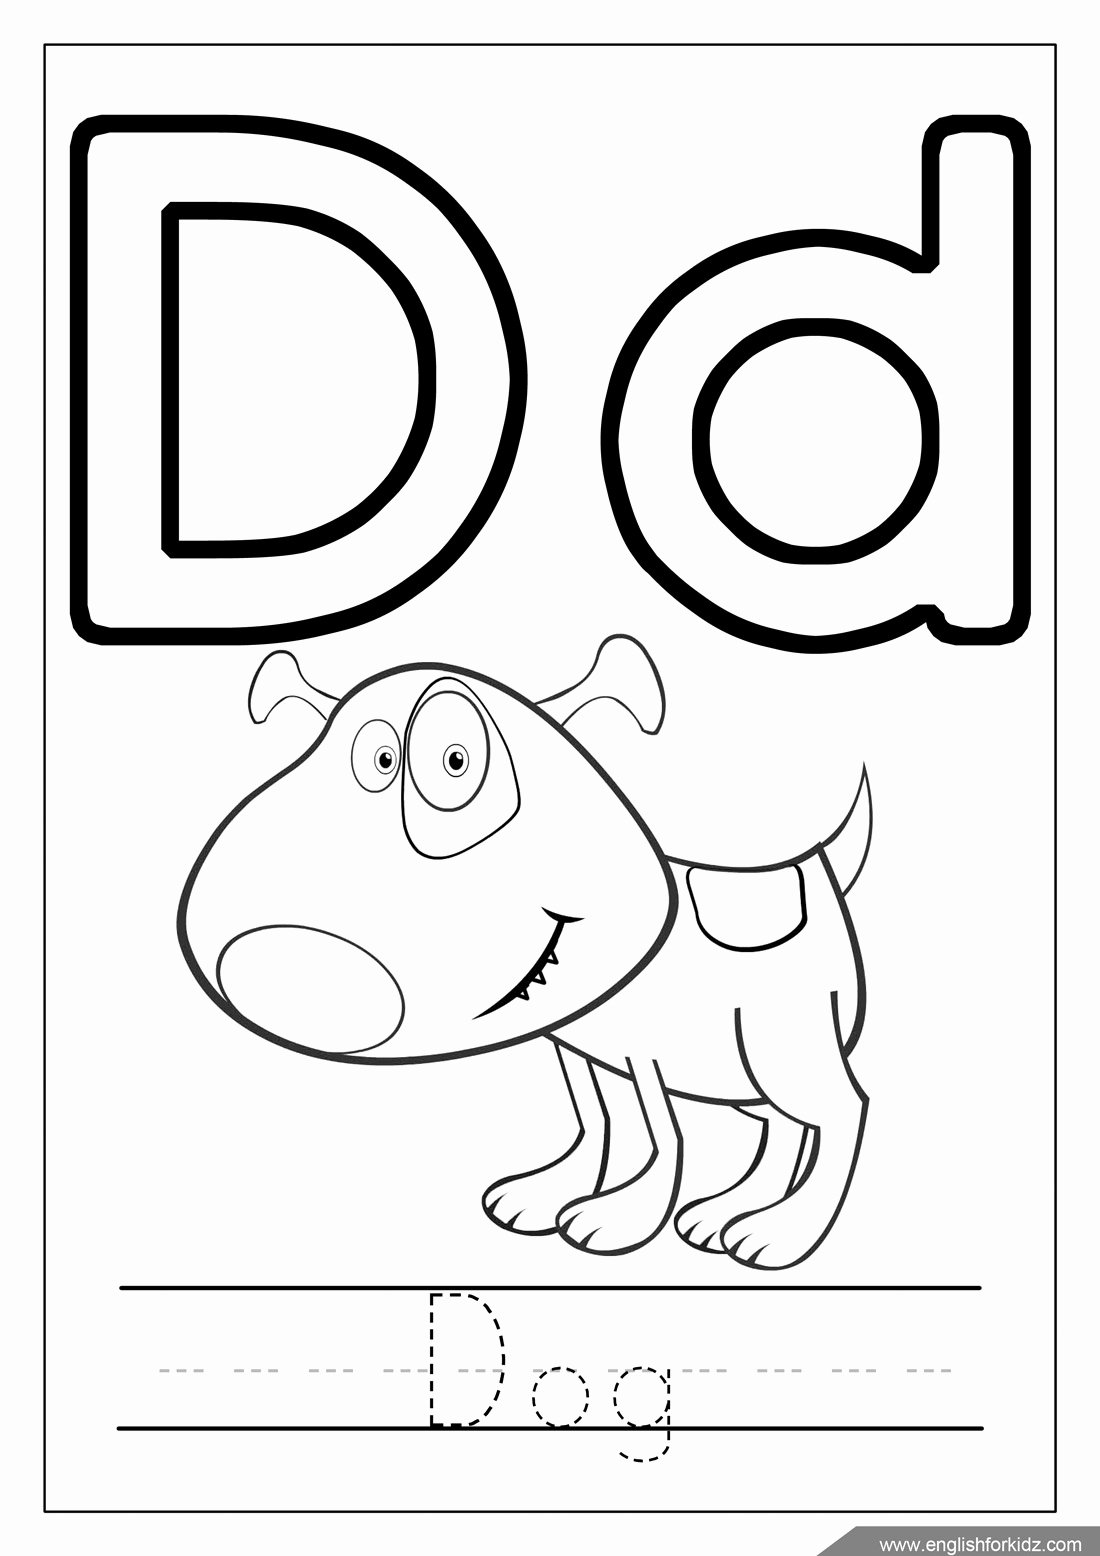 Alphabet Coloring Worksheets for Preschoolers Best Of Excelent Printable Alphabet Coloring Pages